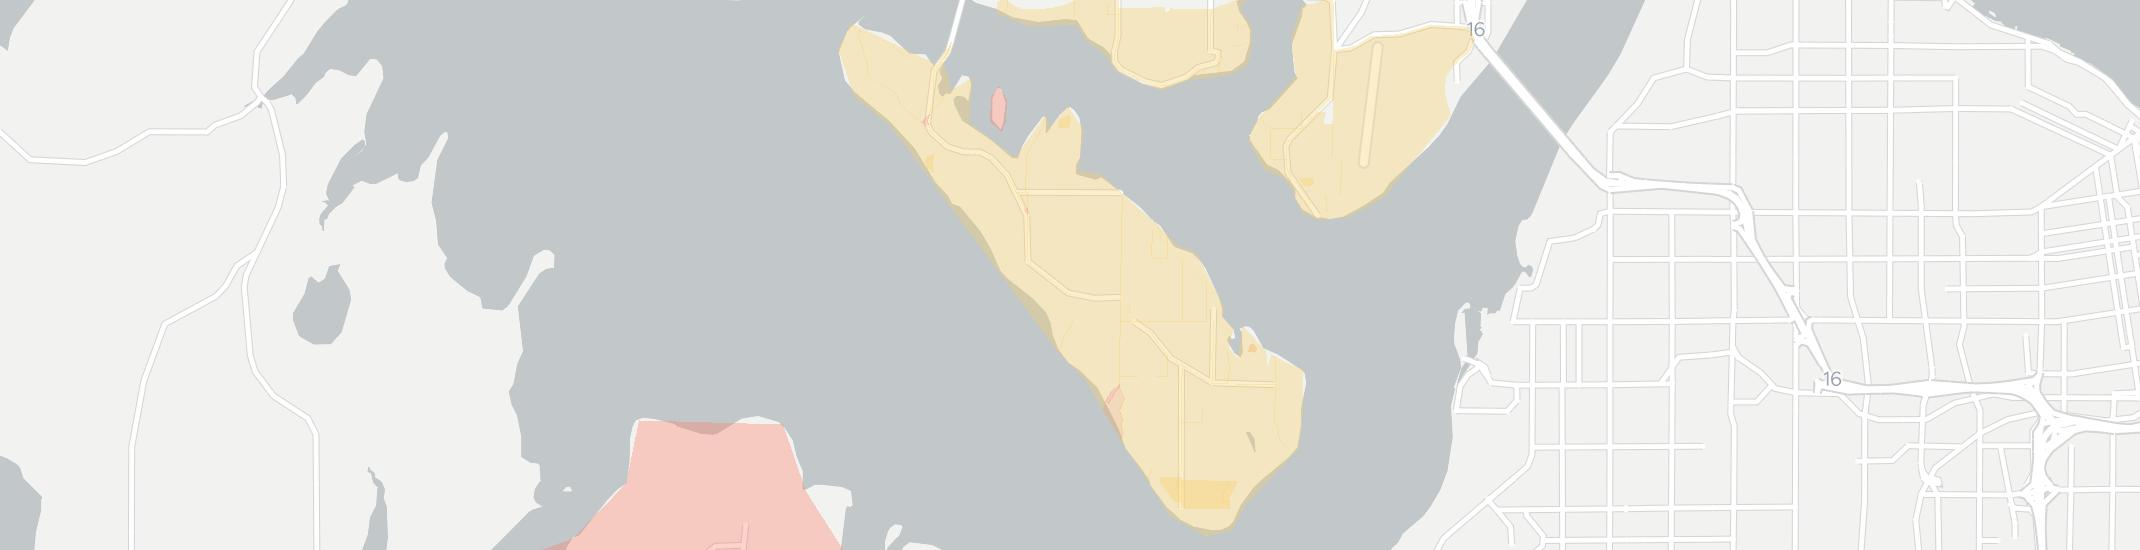 Fox Island Internet Competition Map. Click for interactive map.